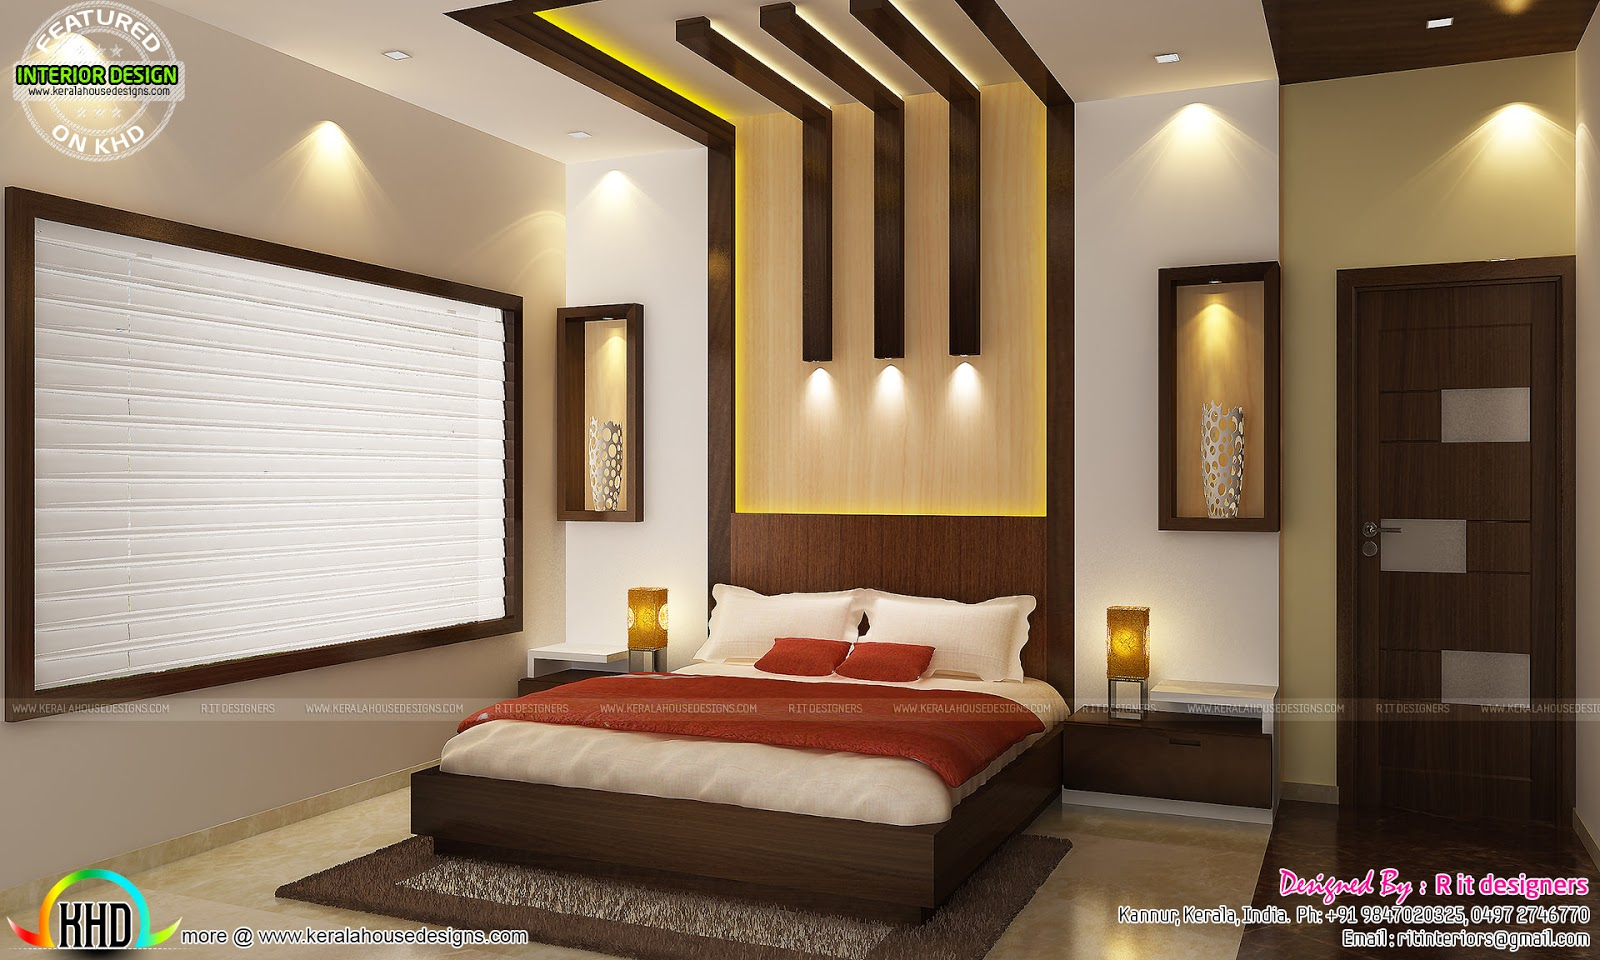 Kitchen living bedroom dining interior decor kerala home design and floor plans - House decoration bedroom ...